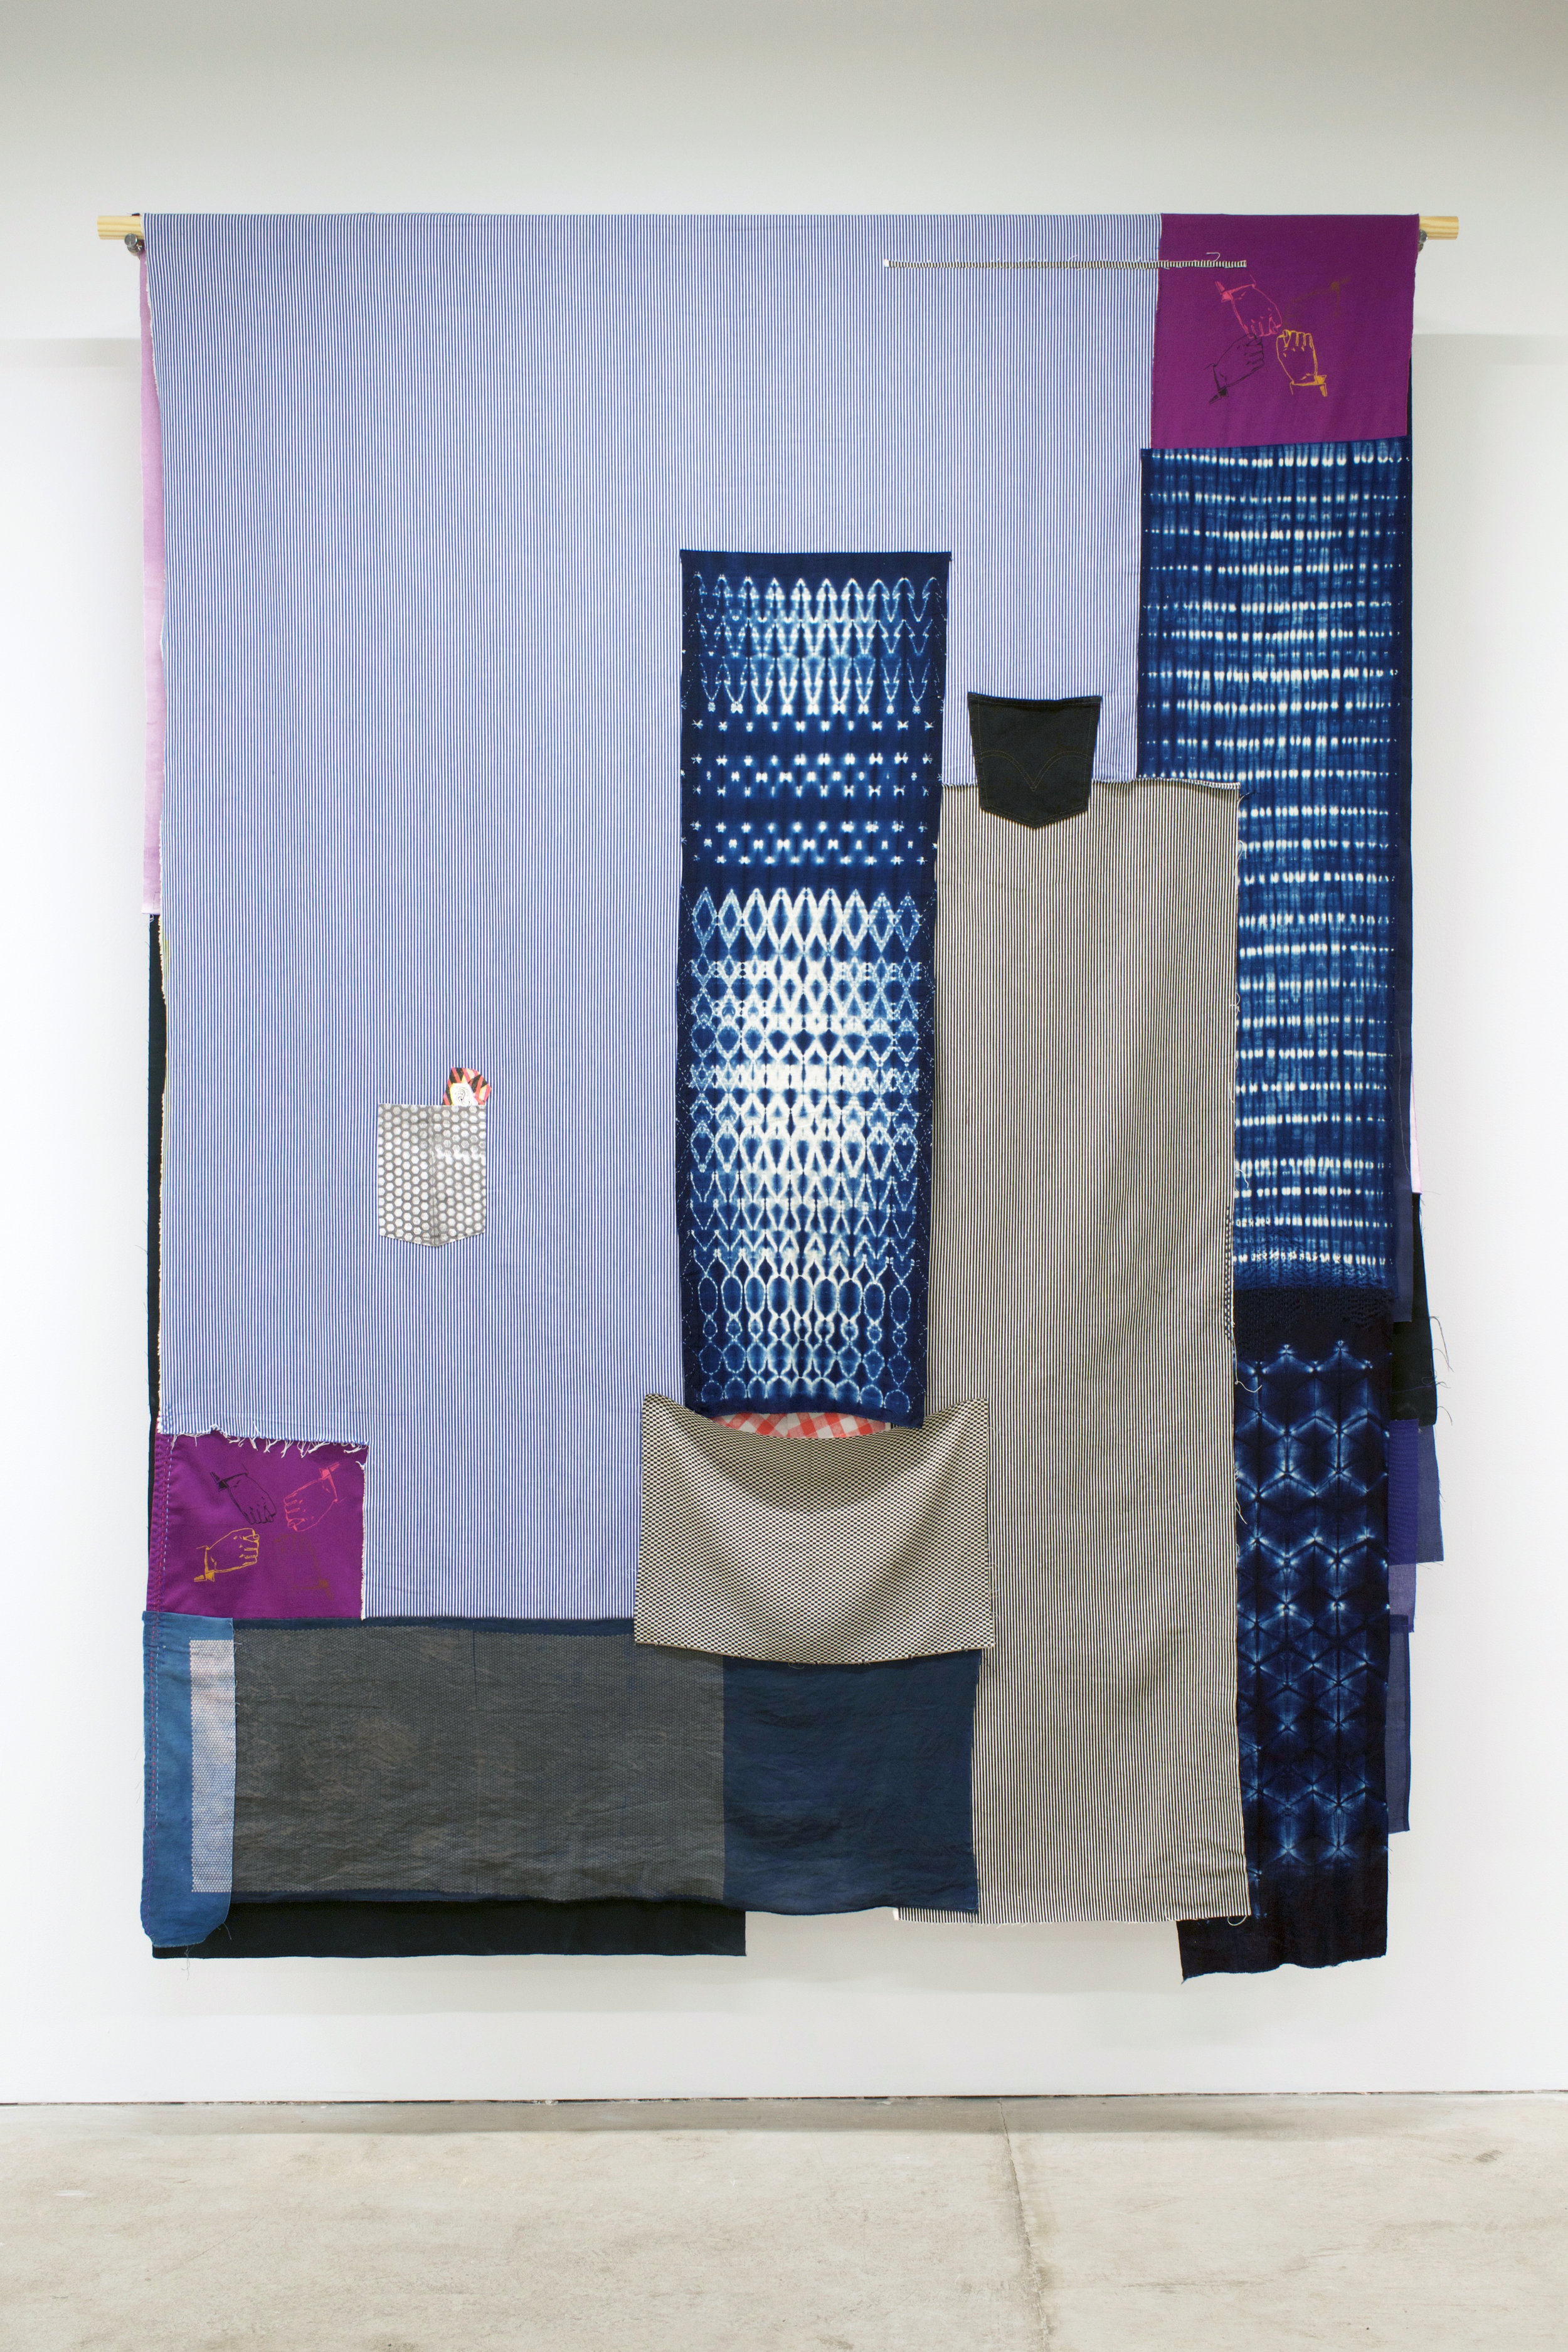 "AMANDA CURRERI   Gestures (Proteggere, Rubare) , 2018 Hand-dyed and hand-printed fabrics with indigo, madder, soot/soya dyes and acrylic on various fabrics such as used table cloths, vintage Japanese linen, and cotton kimono fabric; vintage Japanese silk, Japanese denim (new), American denim (new), deconstructed denim jeans pocket, screenprint on paper, digital print on fabric, recycled American flag cut-offs, and thread, 96"" x 72"" (two-sided)"